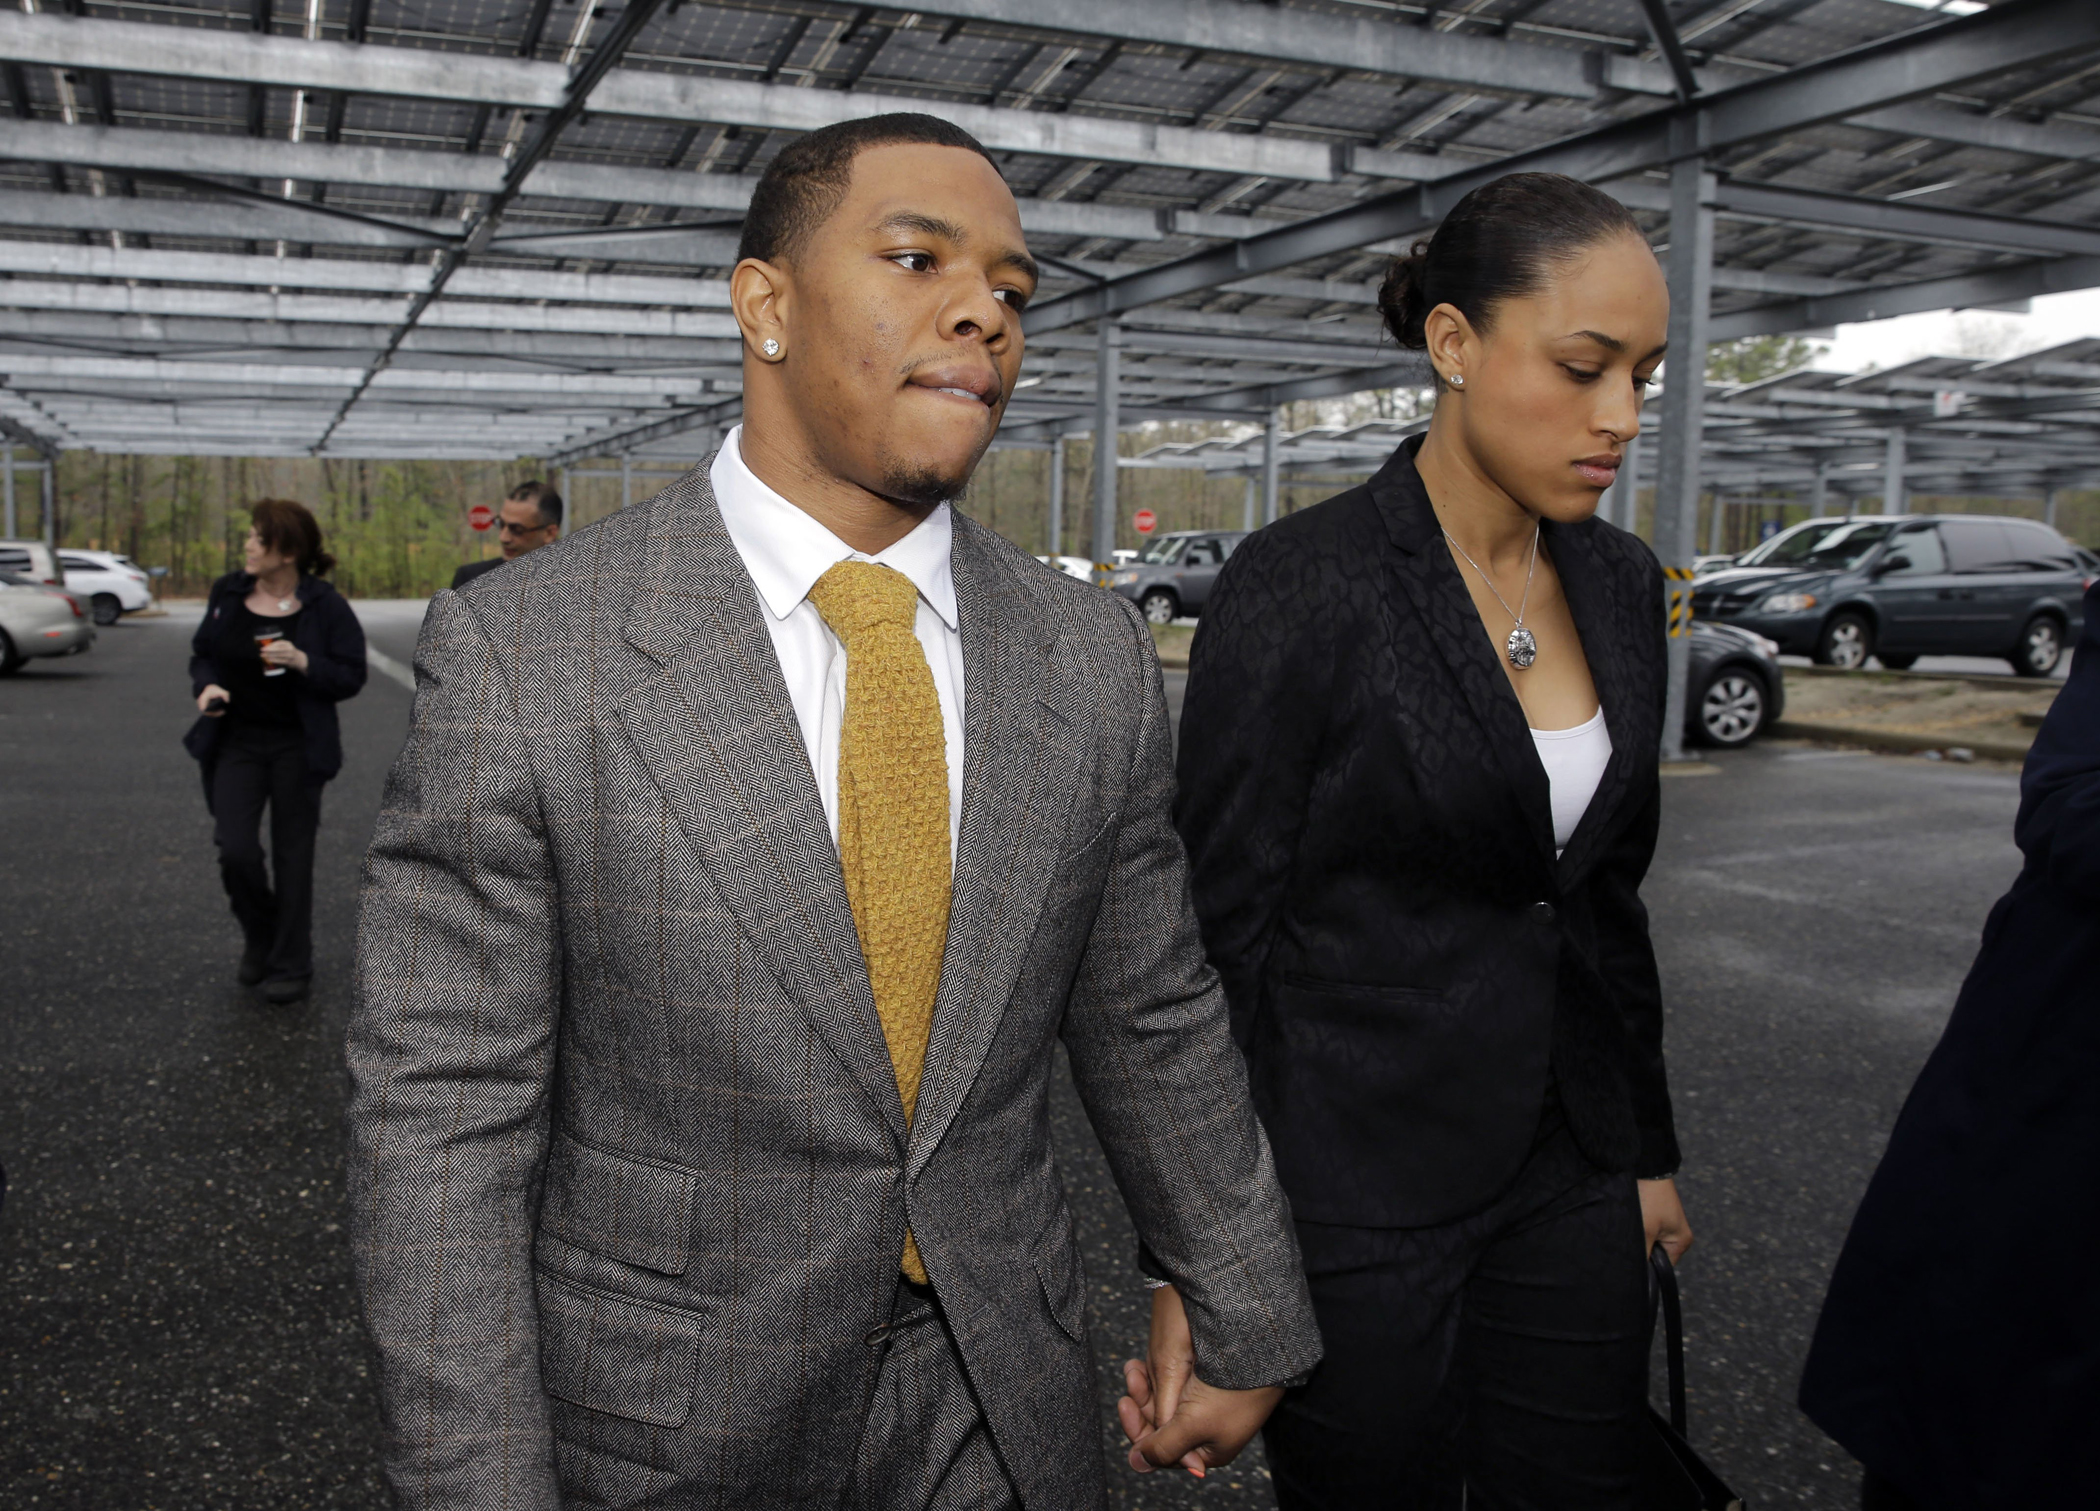 Baltimore Ravens football player Ray Rice holds hands with his wife, Janay Palmer, as they arrive at Atlantic County Criminal Courthouse in Mays Landing, N.J., in May 2014.